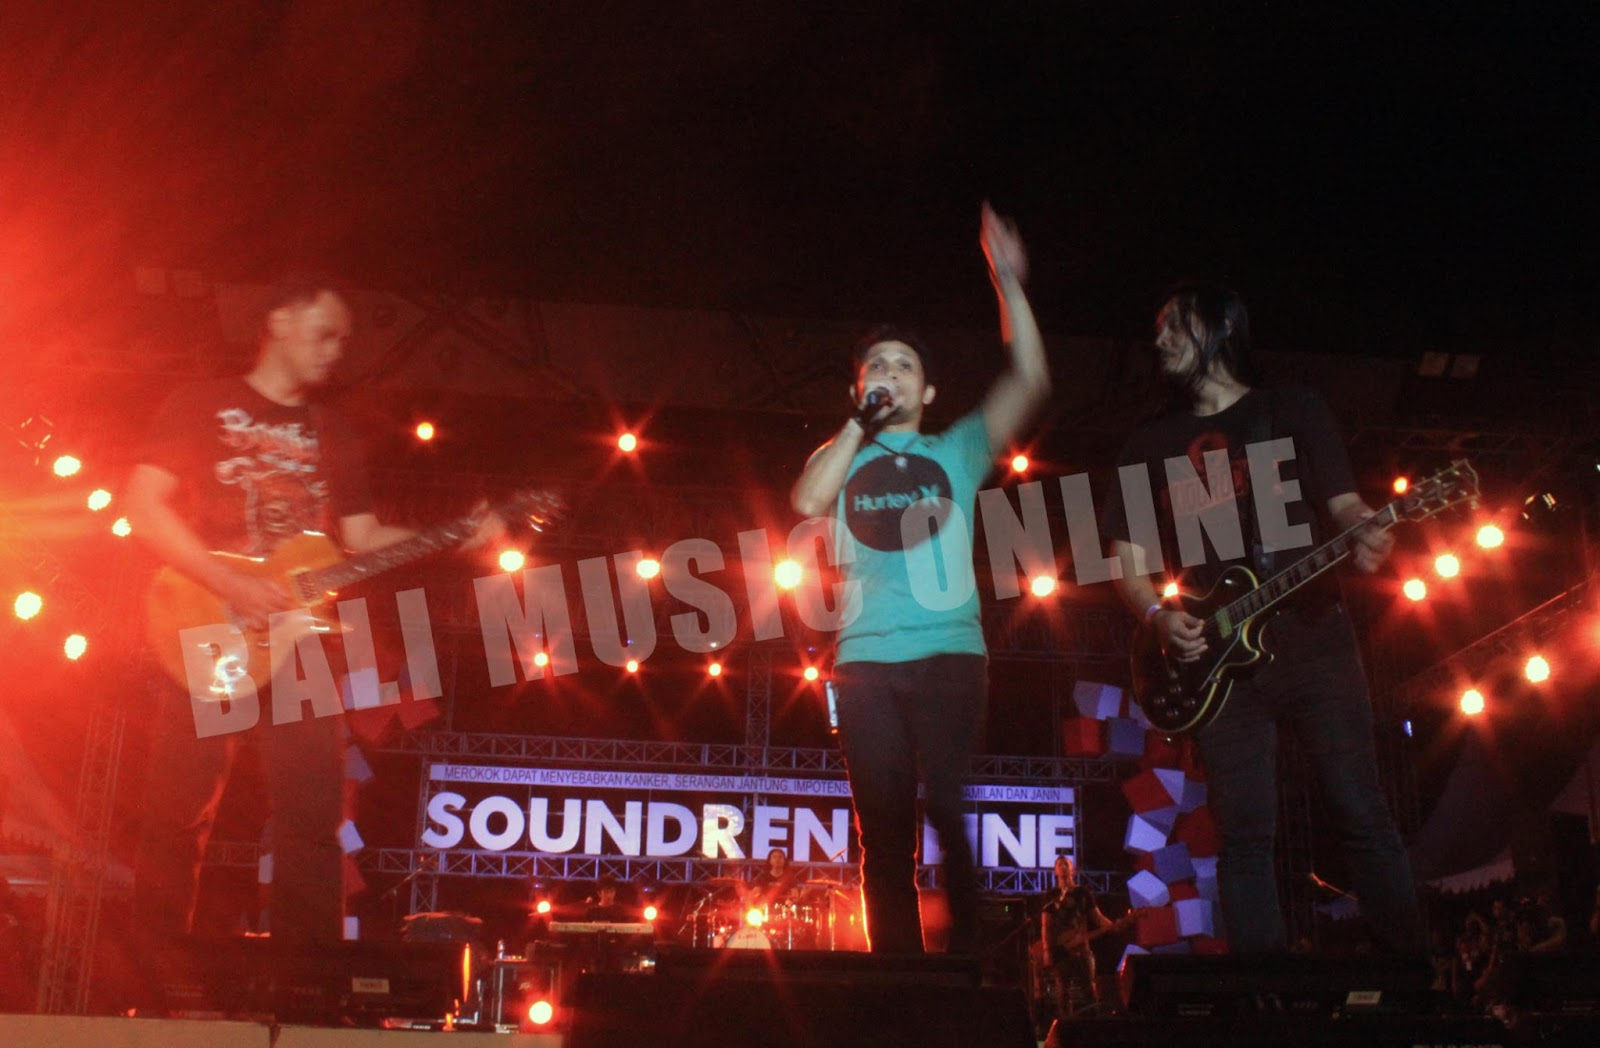 Bali Music Online A Road To Soundrenaline 2013 Di Tiket Soundren Andra And The Backbone